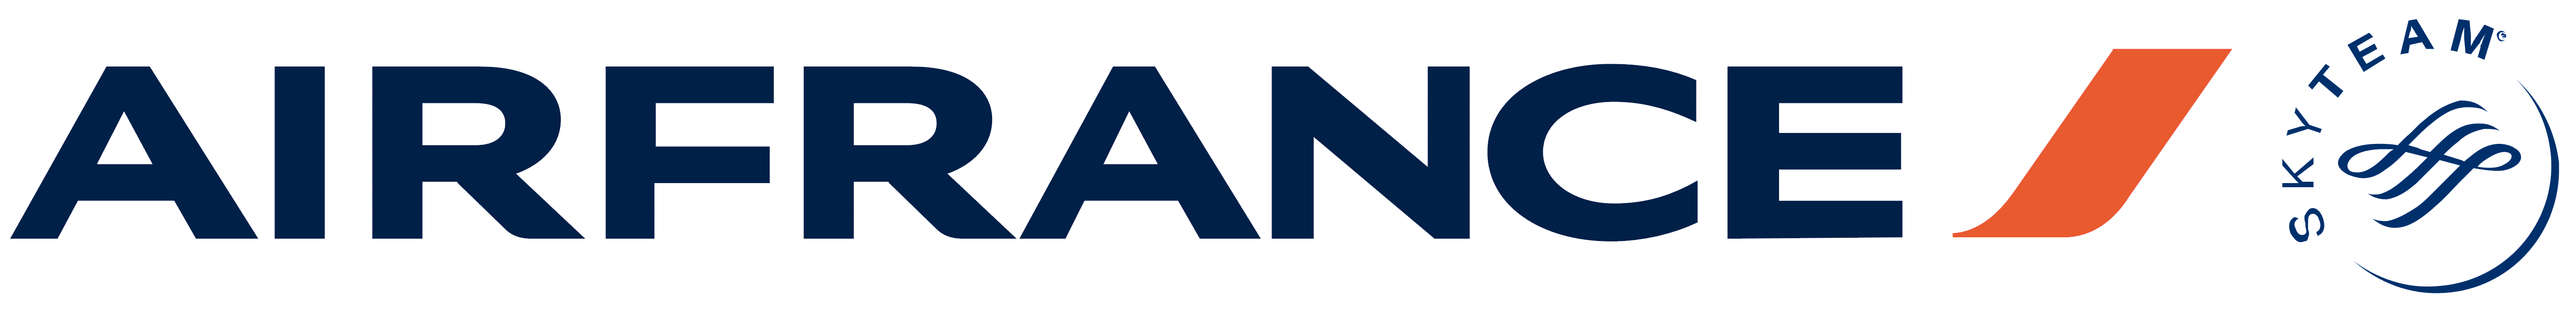 Air France logo (AirFrance, SkyTeam symbol) - Air France Logo PNG